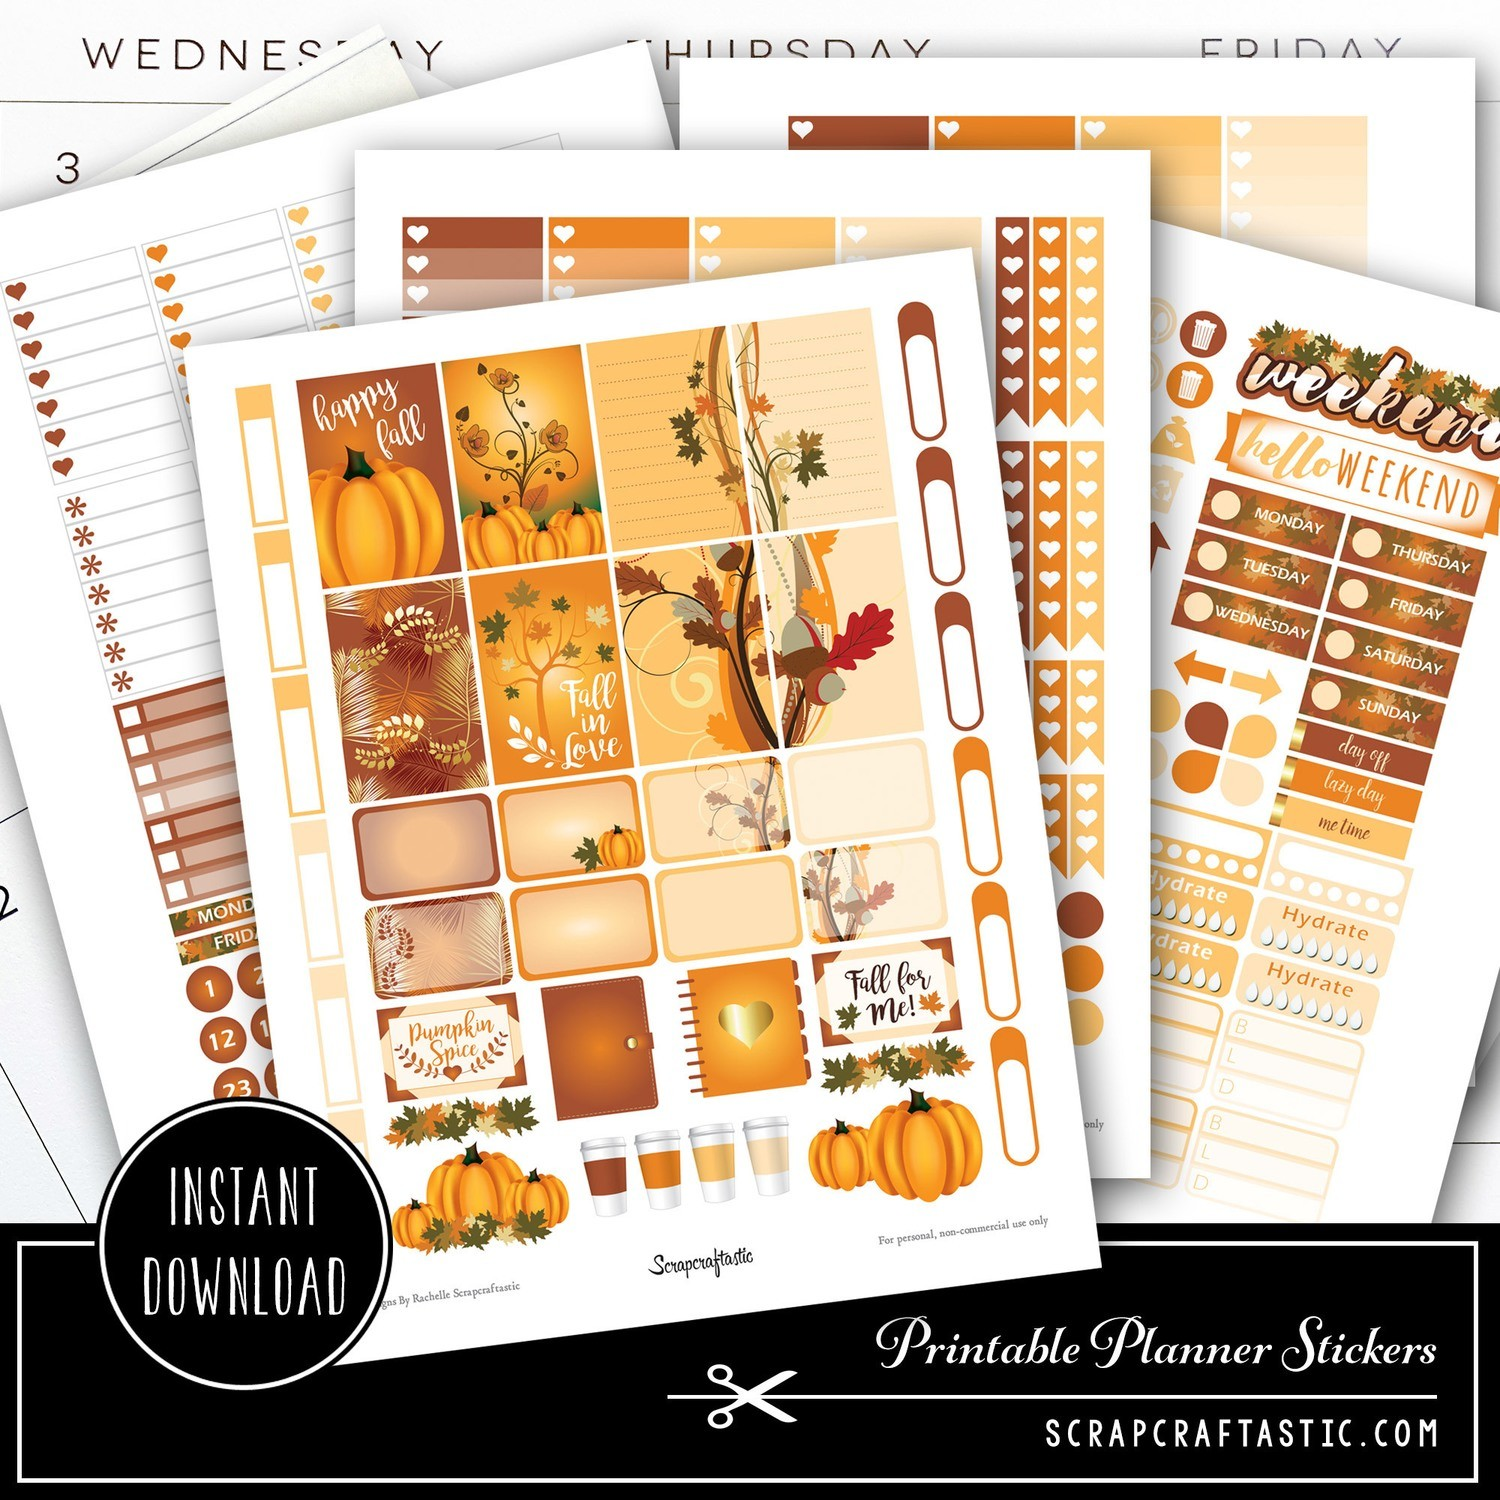 Pumpkin Spice Printable Planner Stickers